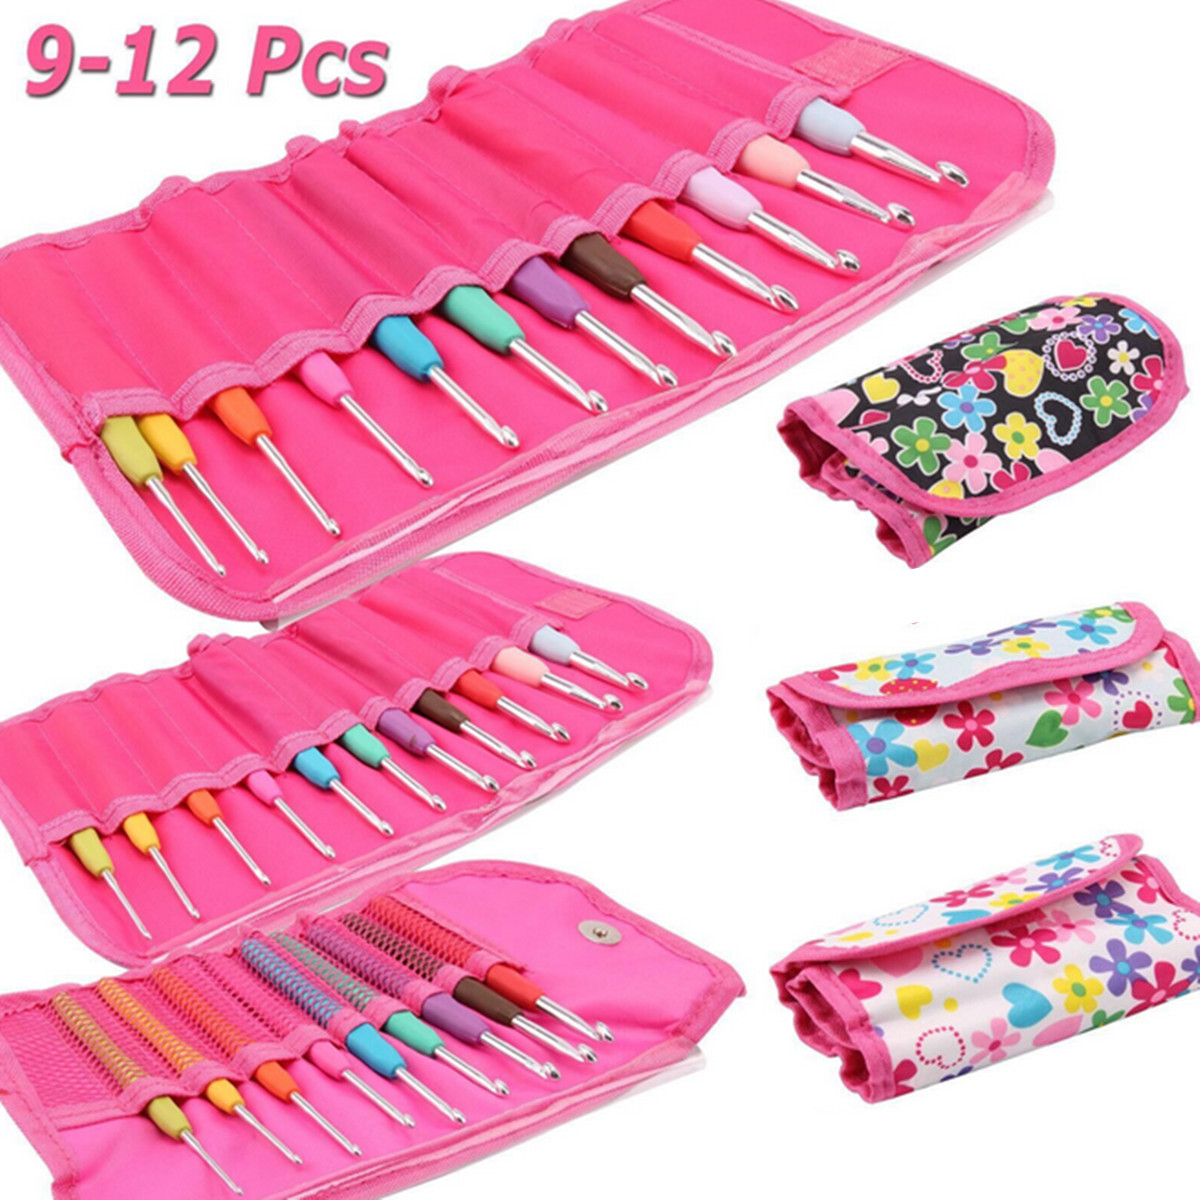 9/11/12Pcs Crochet Hook Set Knitting Needle Yarn Handle Organiser Case Set Tool,9 color